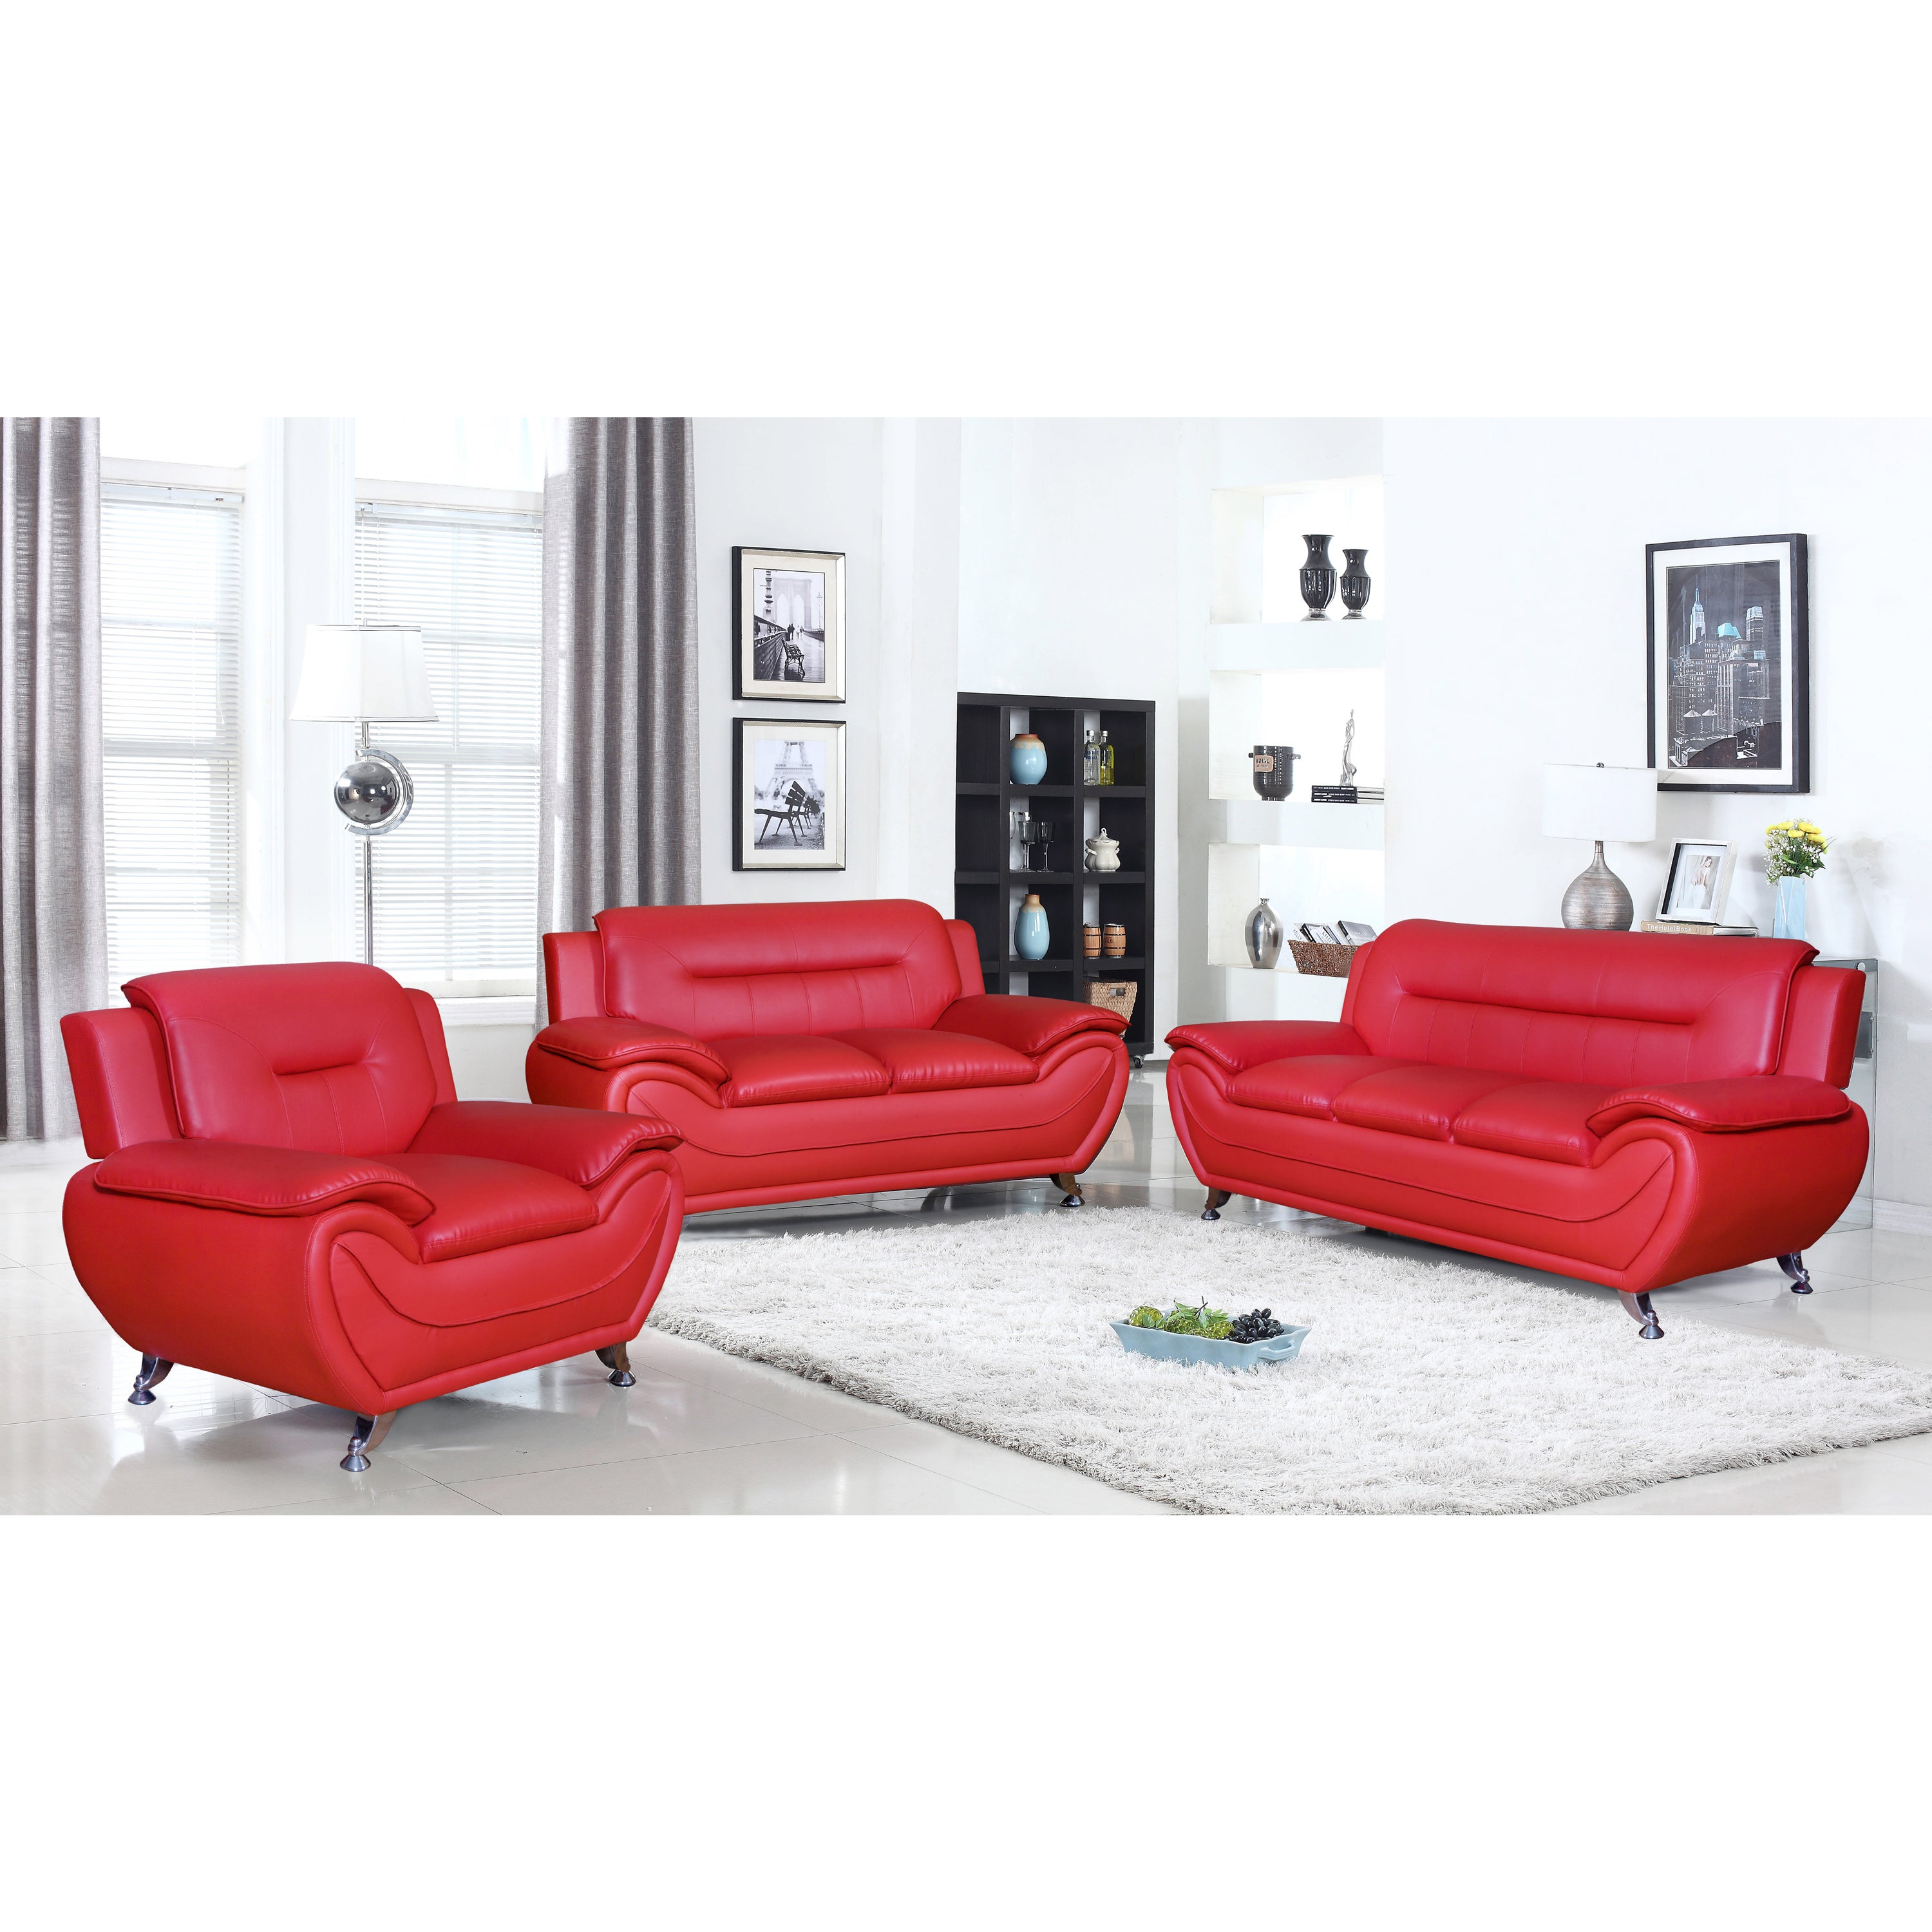 Deliah relaxing contemporary modern style 3pc sofa set 3 colors